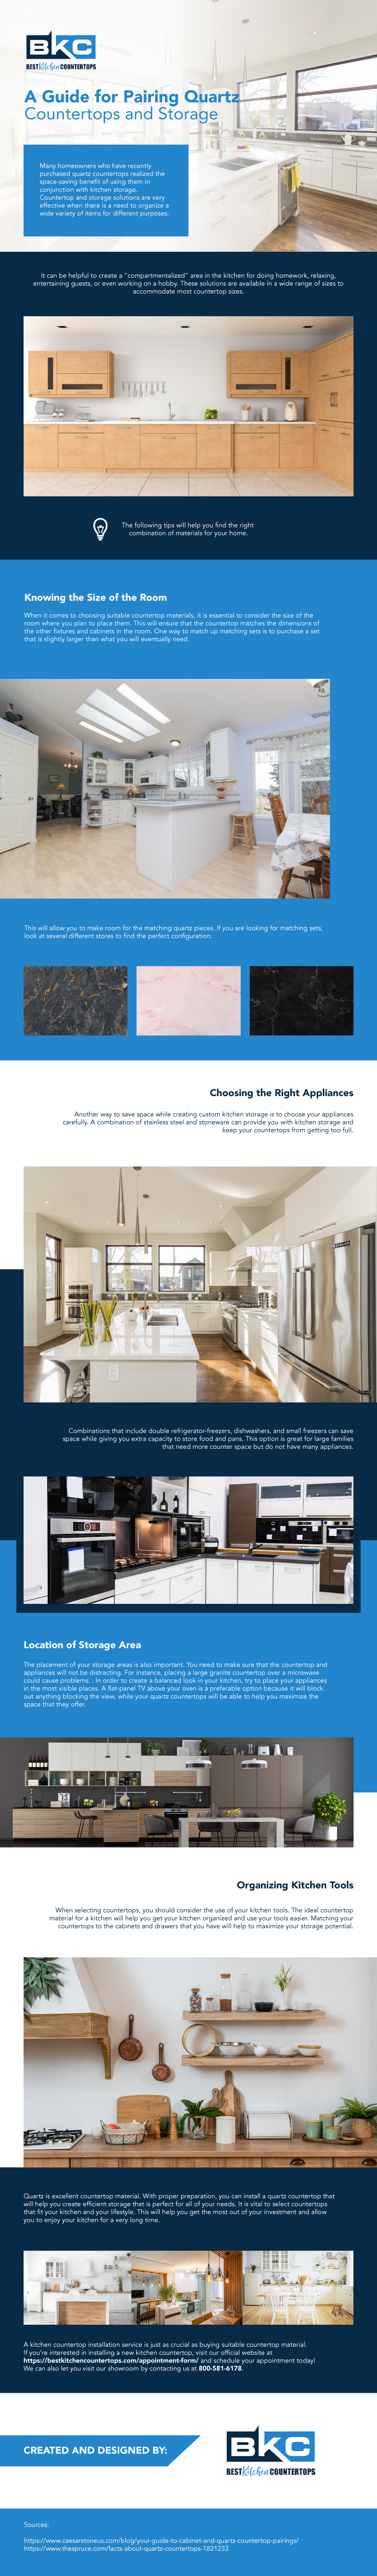 A Guide for Pairing Quartz Countertops and Storage4791